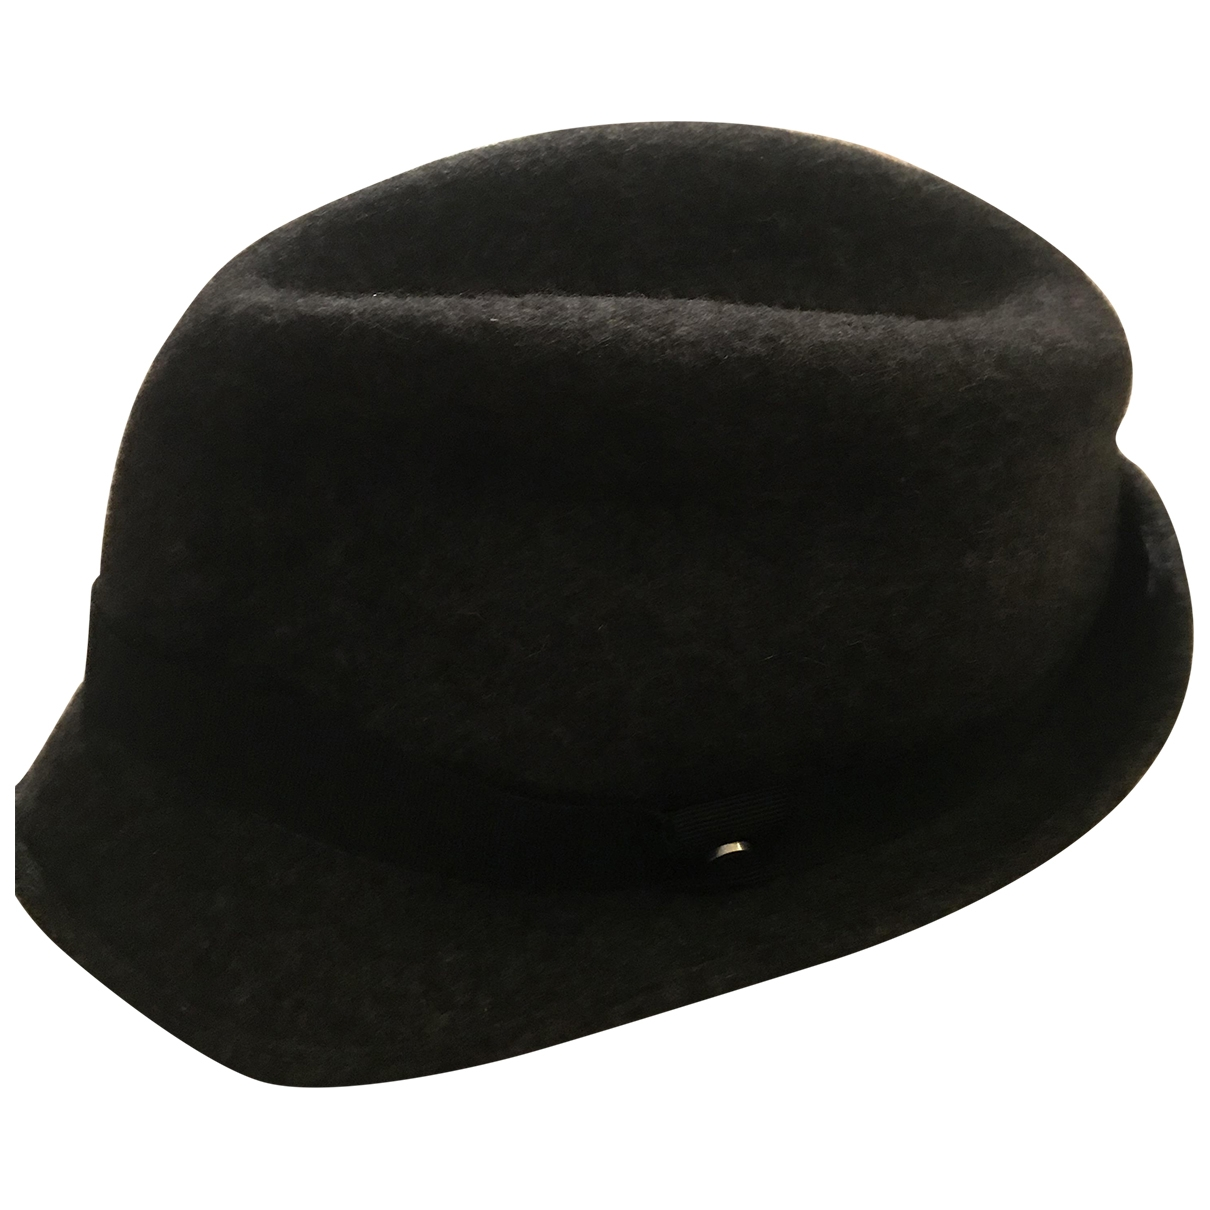 Emporio Armani \N Anthracite Wool hat & pull on hat for Men 59 cm